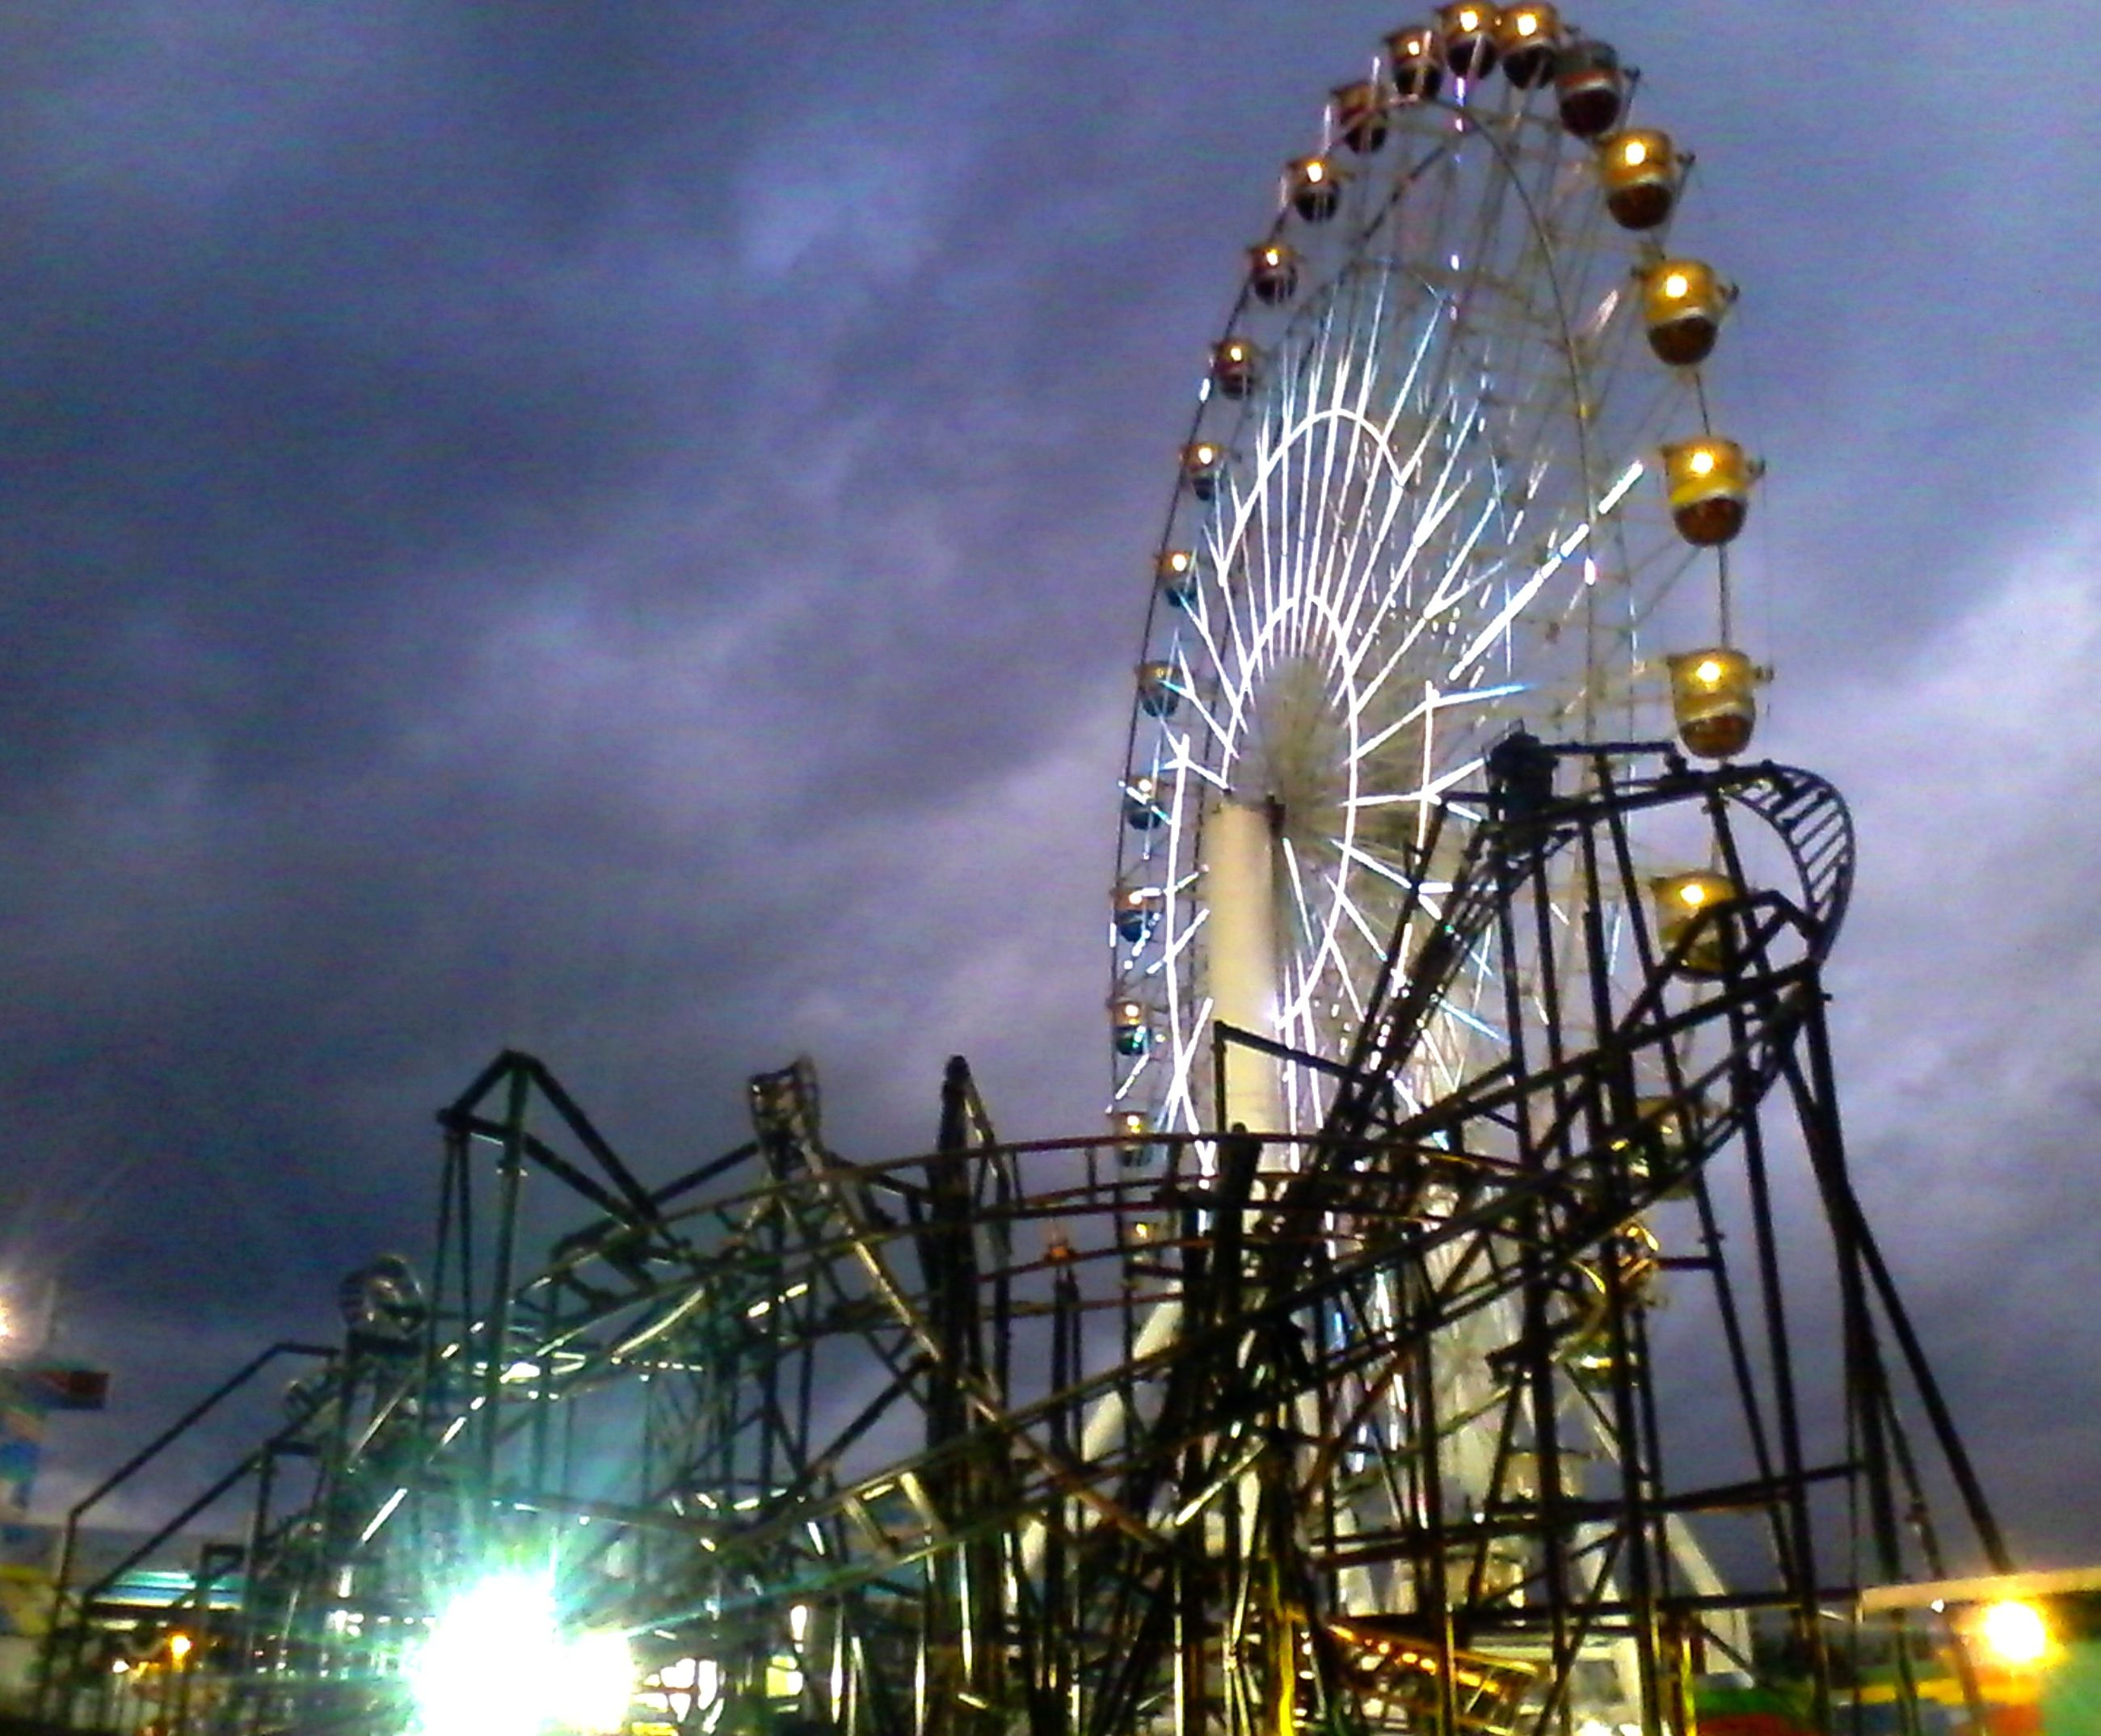 amusement park, ferris wheel, amusement park ride, low angle view, arts culture and entertainment, sky, cloud - sky, illuminated, built structure, silhouette, night, dusk, outdoors, metal, fun, cloudy, no people, big wheel, tall - high, fairground ride